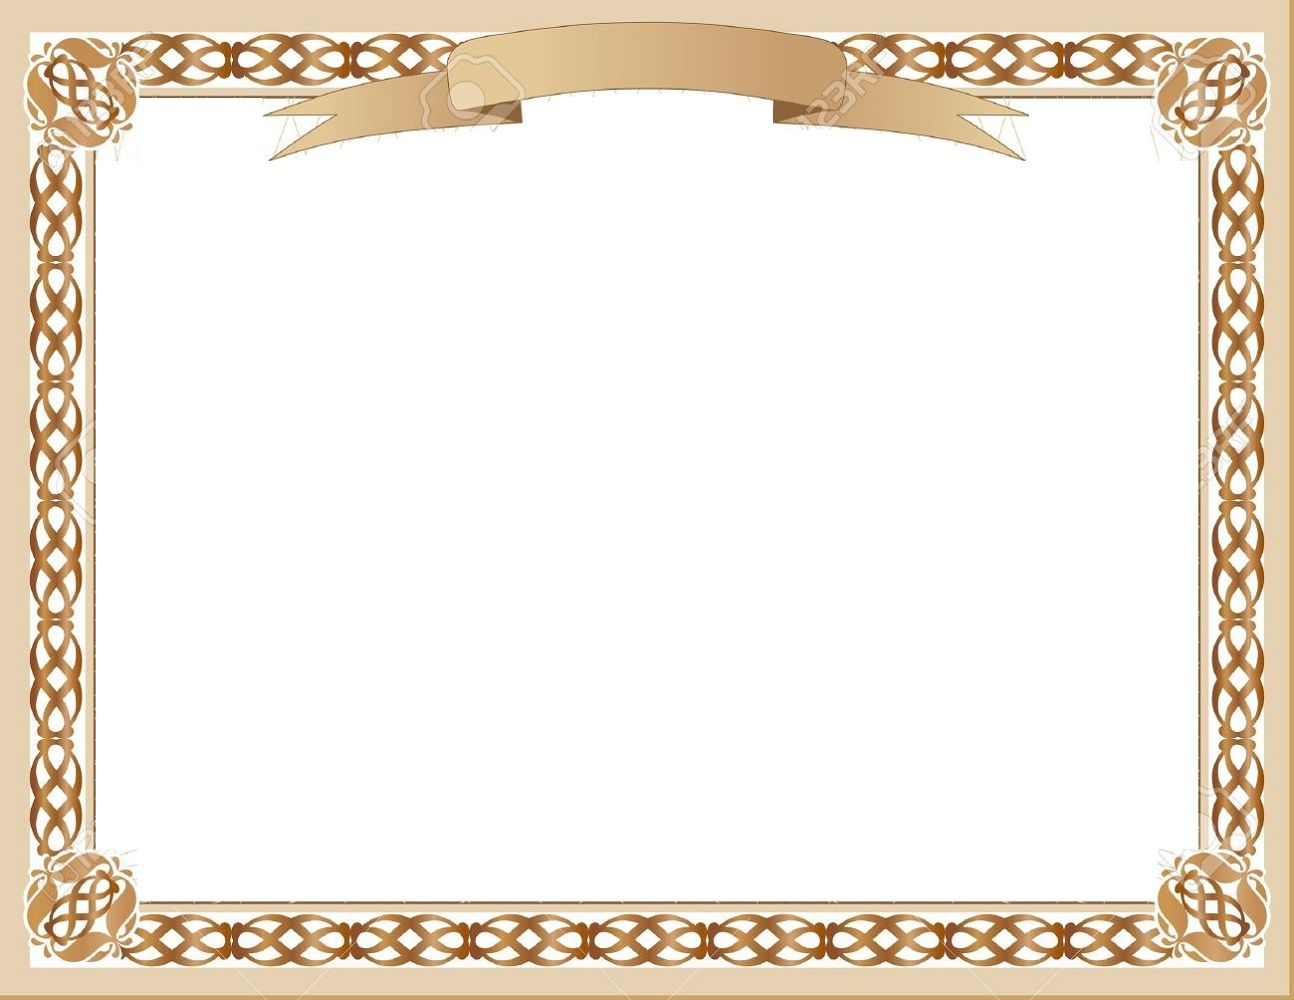 Blank Certificate Template for Best Solution.